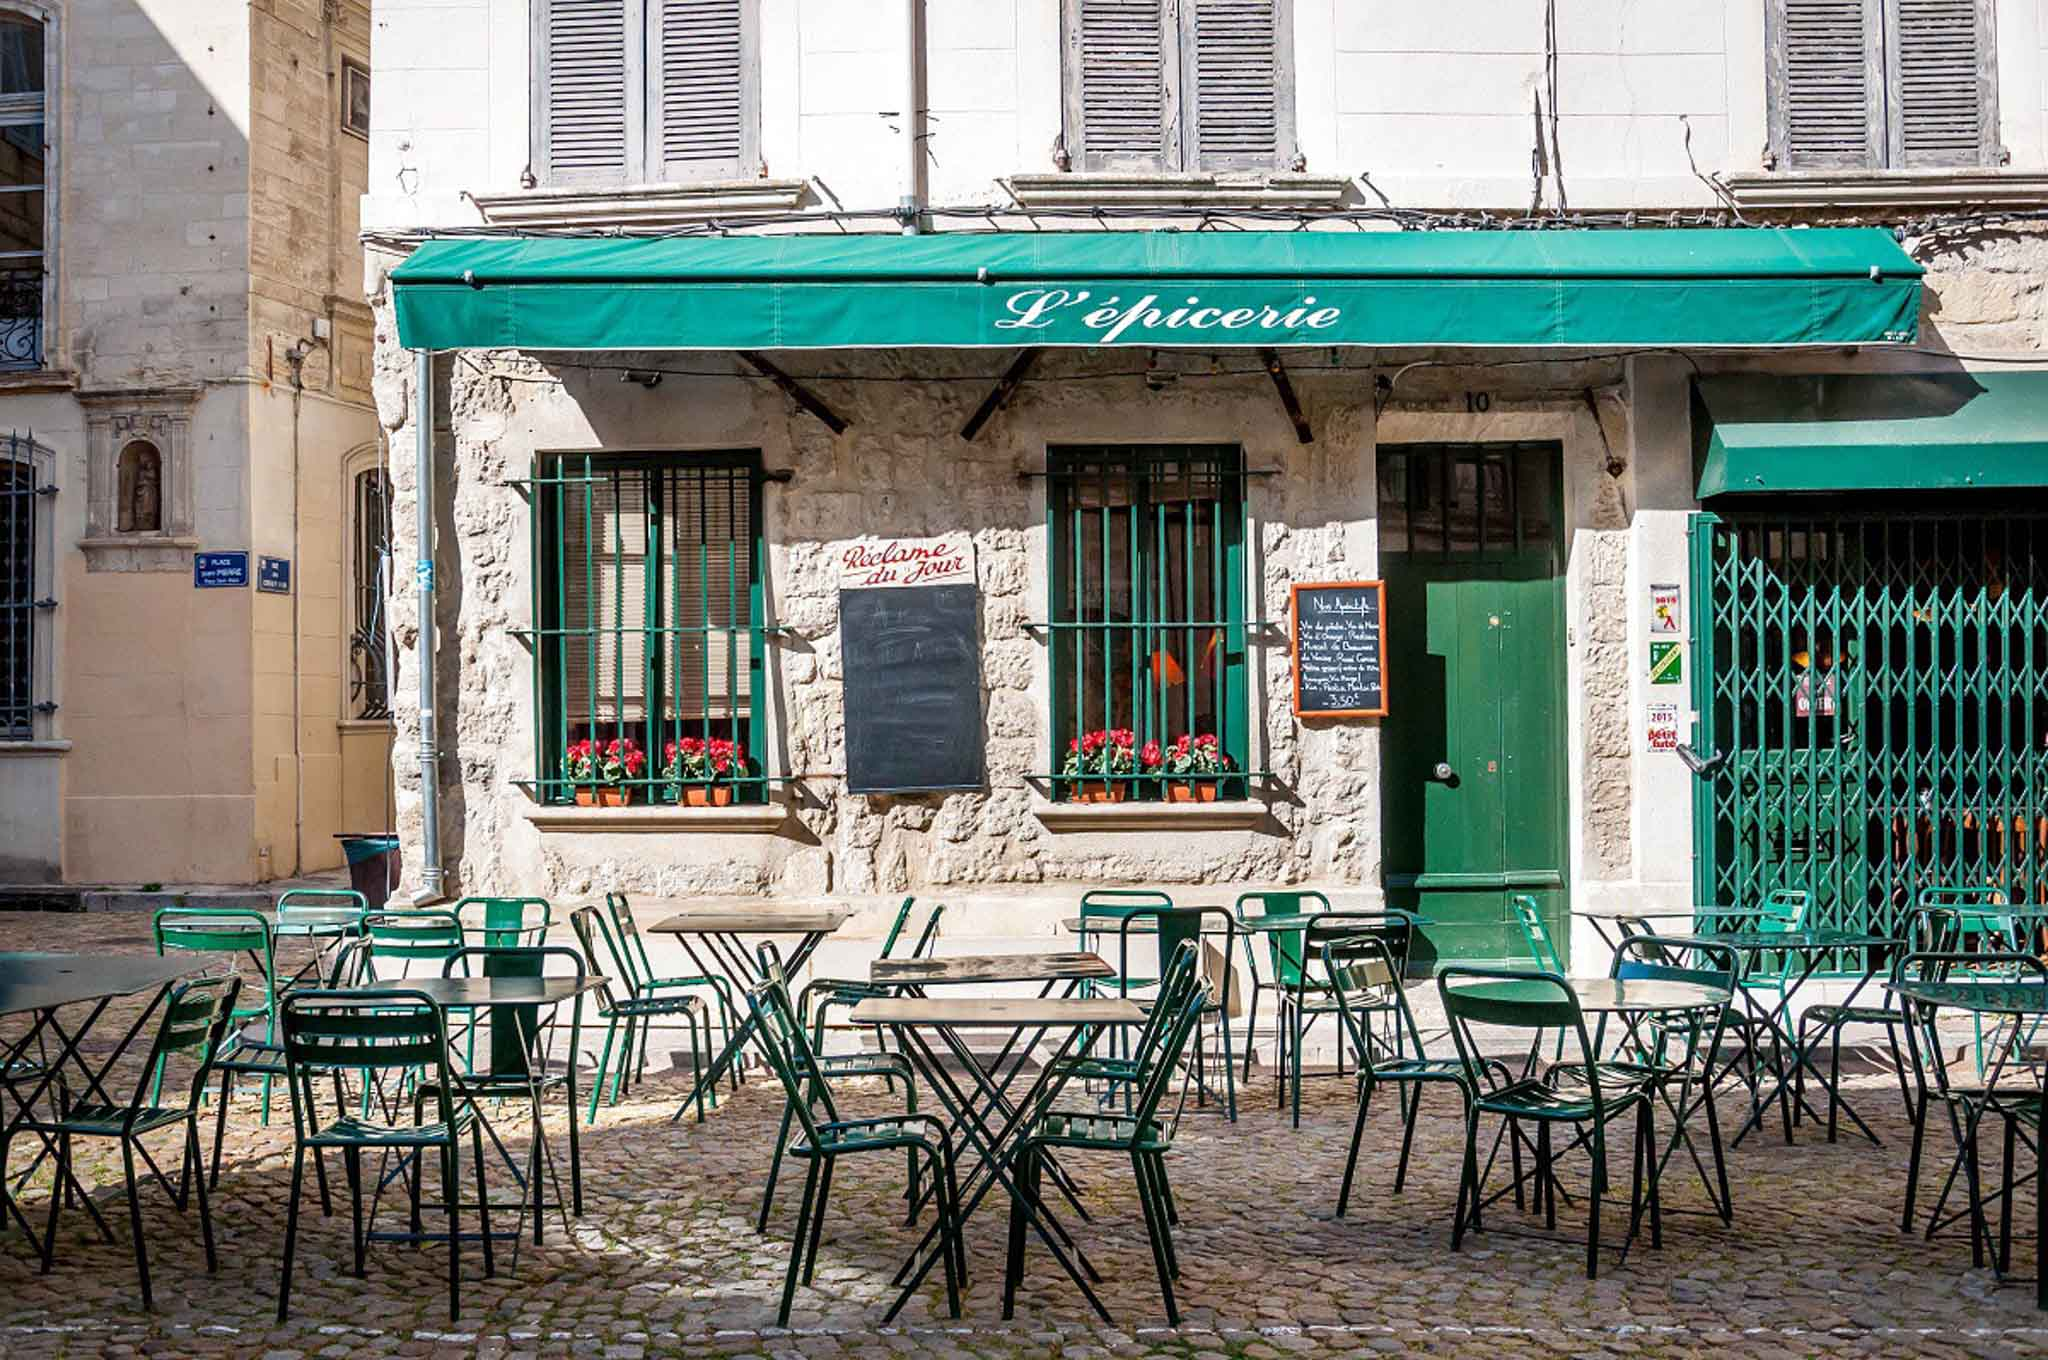 One of the many cute cafes in Avignon, France